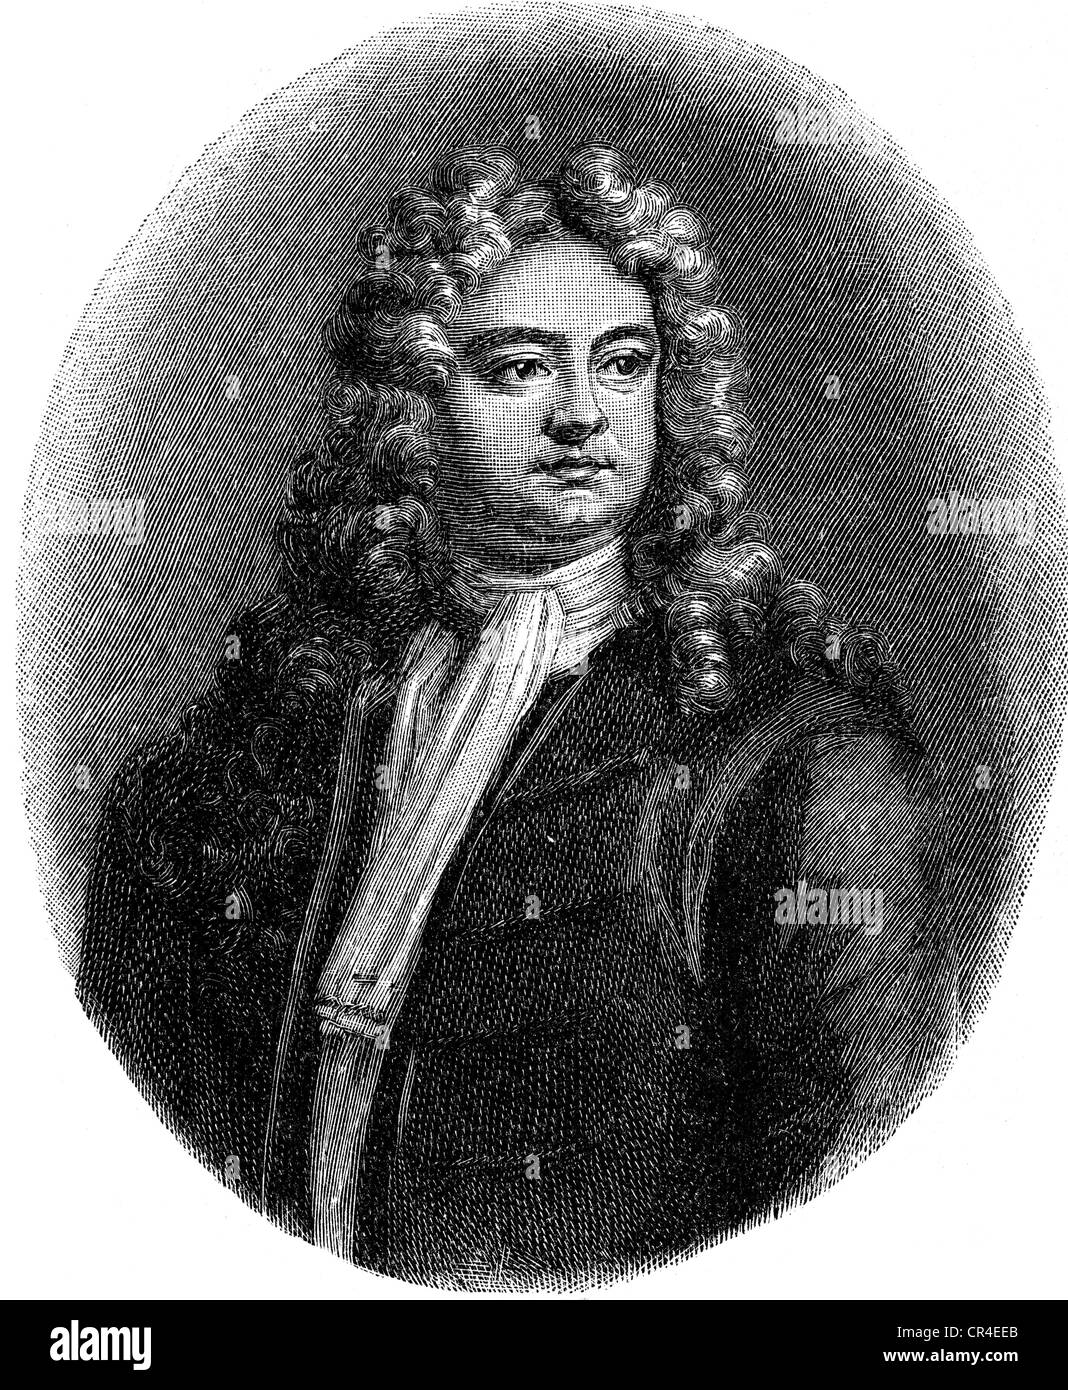 Steele, Richard, 12.3.1672 - 1.9.1729, Irish author / writer, half length, copper engraving by J. Smith after painting - Stock Image